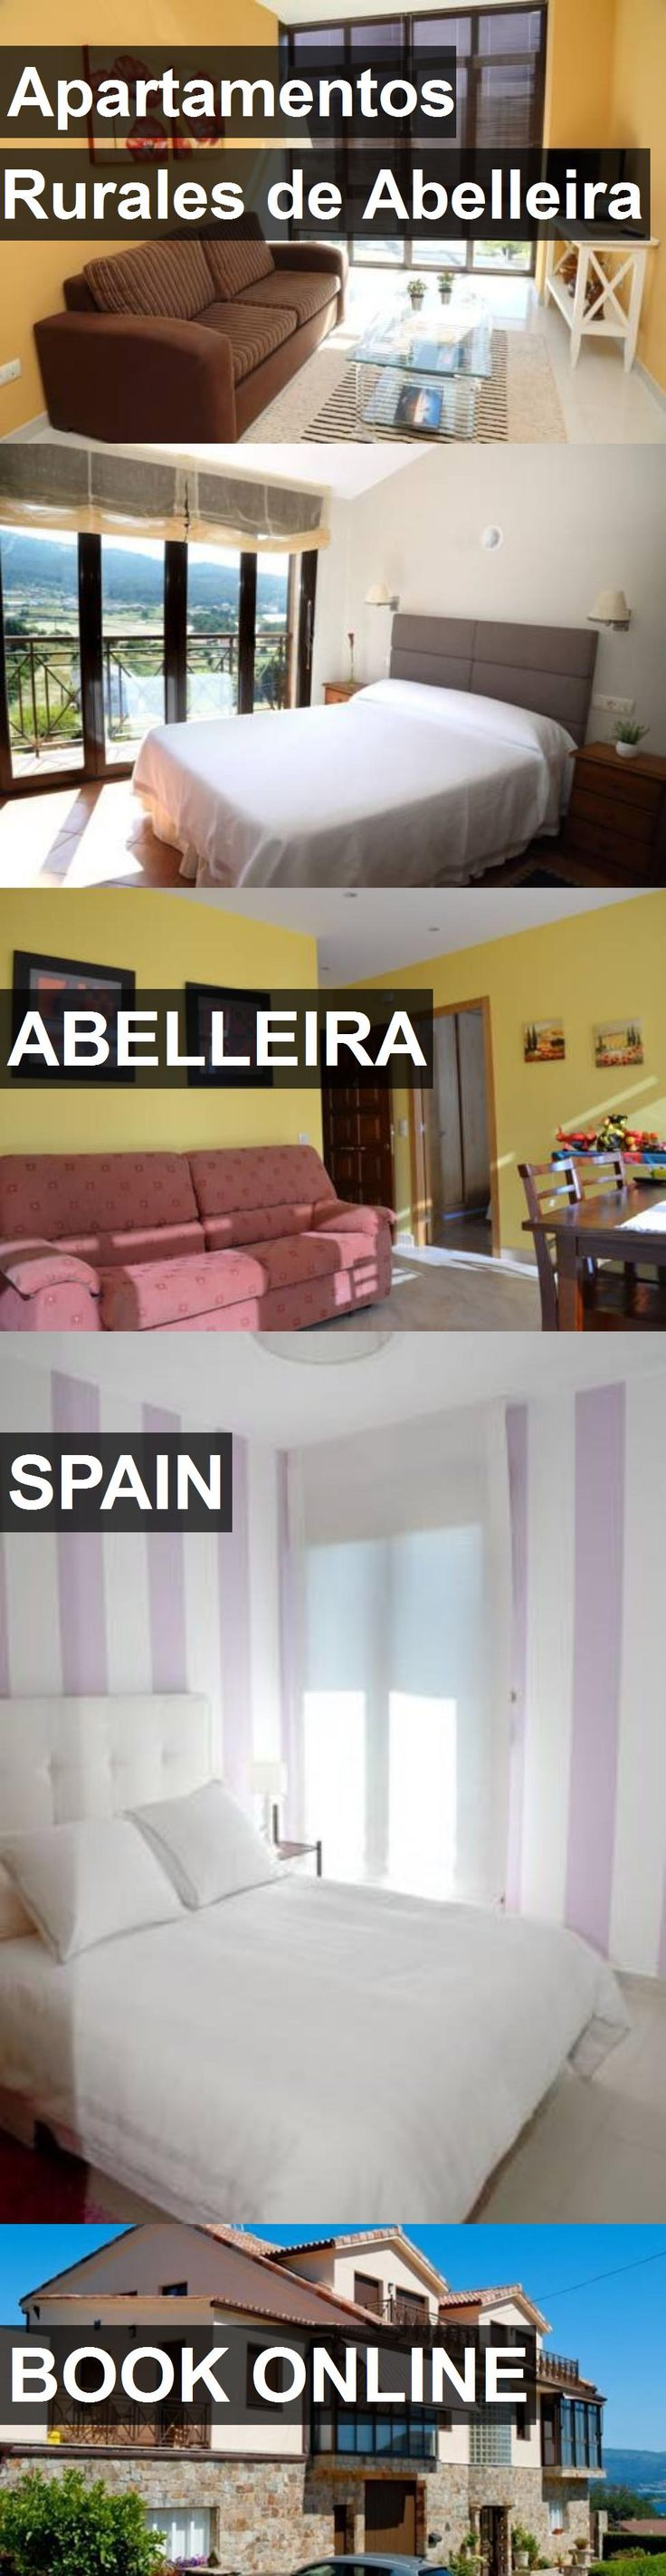 Hotel Apartamentos Rurales de Abelleira in Abelleira, Spain. For more information, photos, reviews and best prices please follow the link. #Spain #Abelleira #travel #vacation #hotel